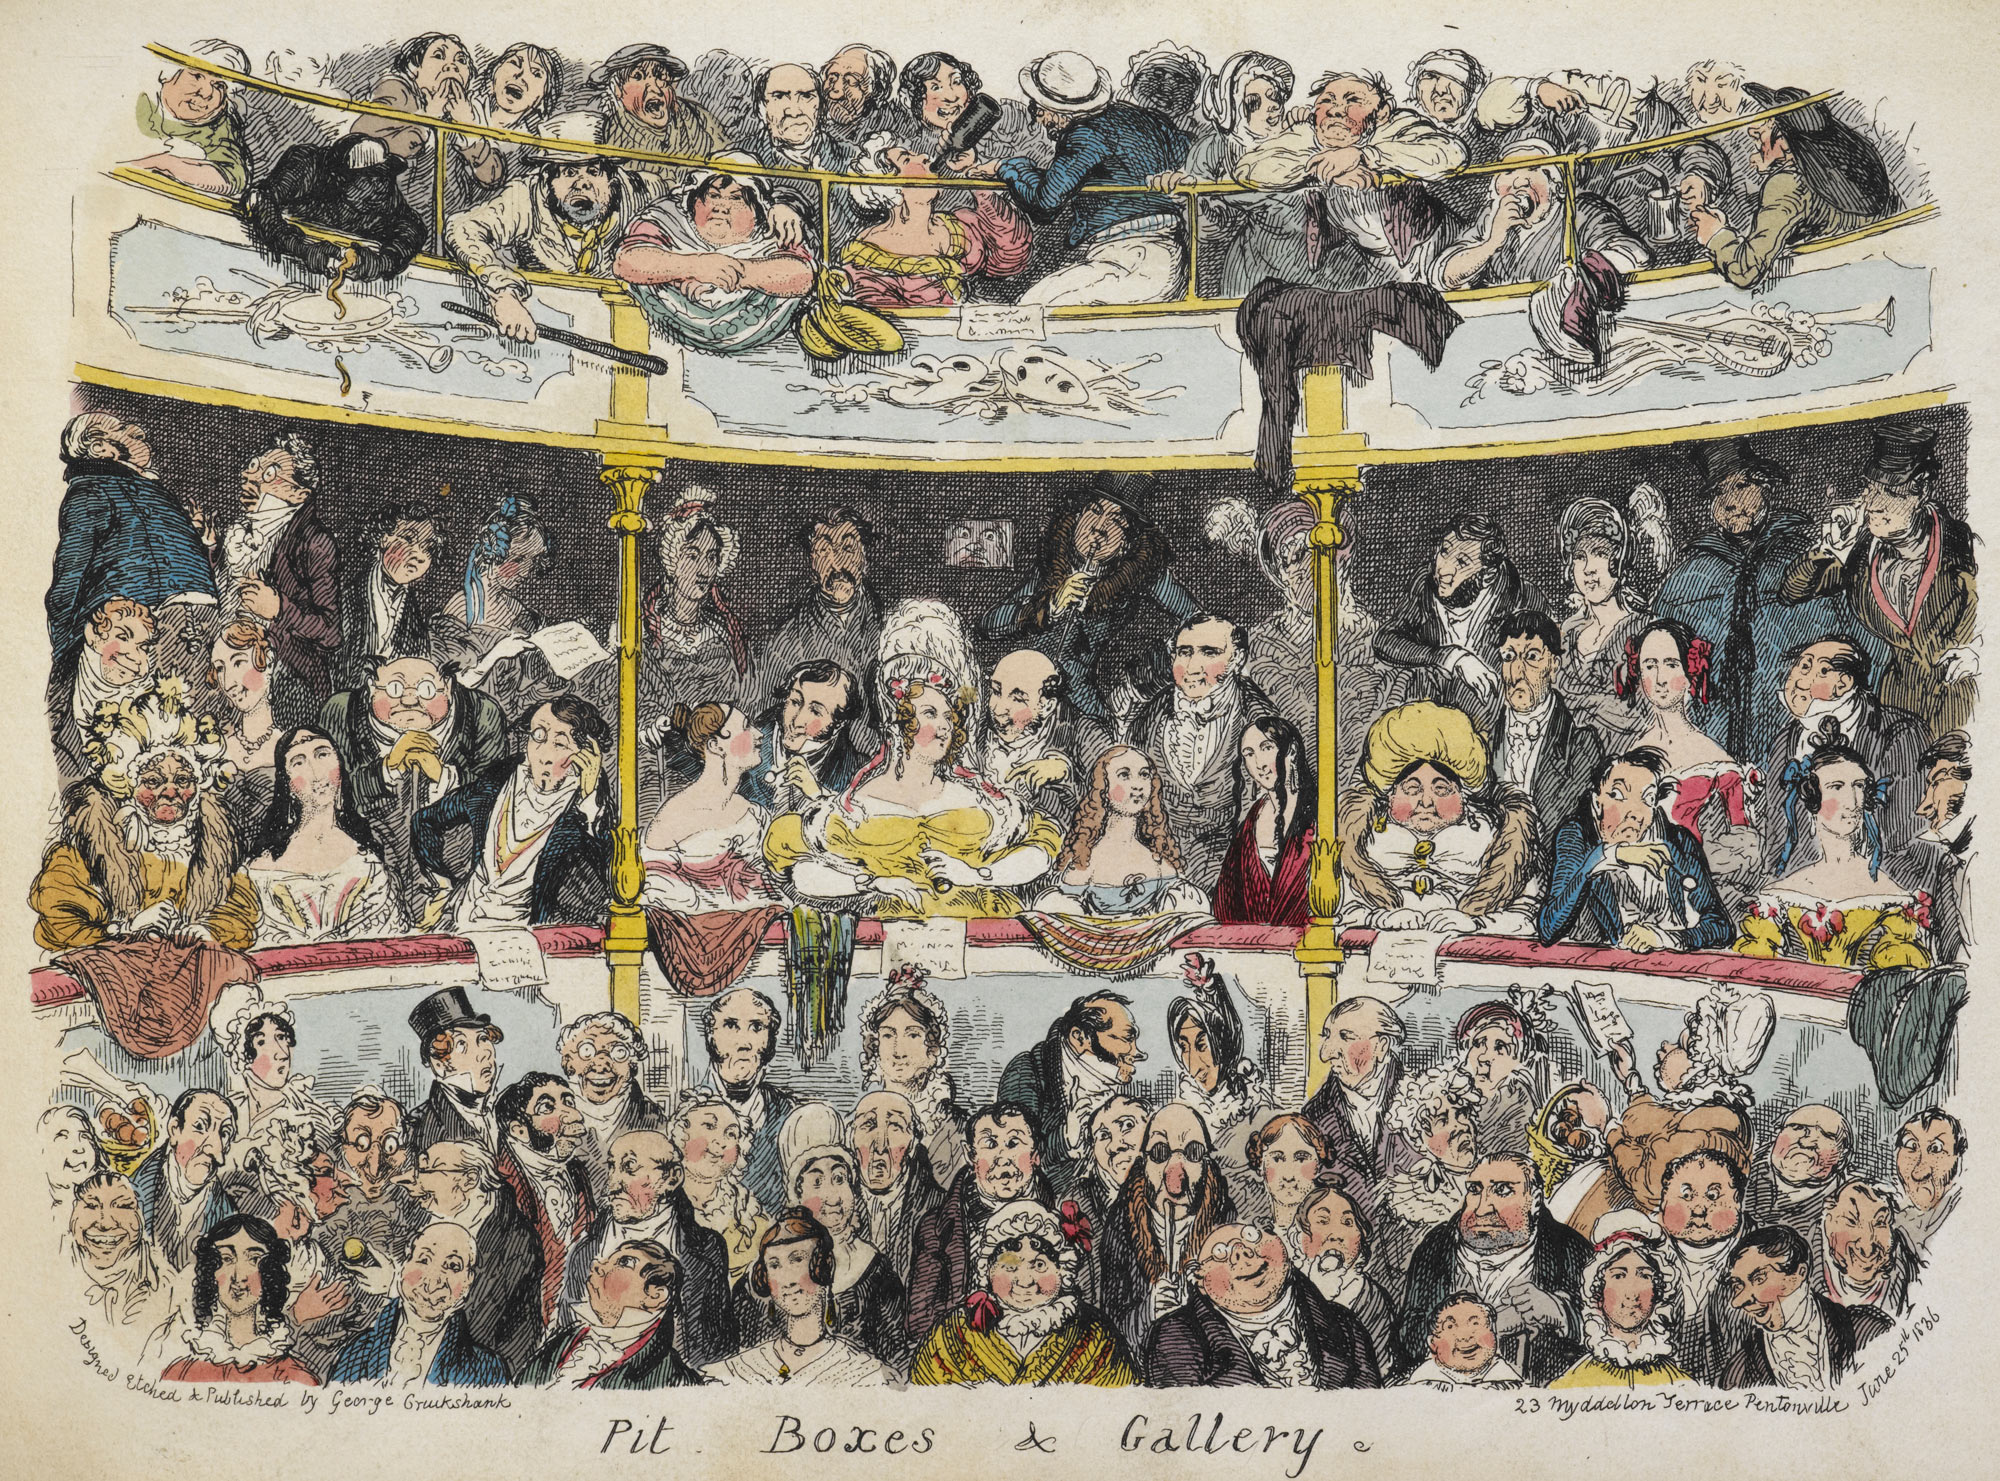 Pit boxes & Gallery, from My Sketch Book by George Cruikshank